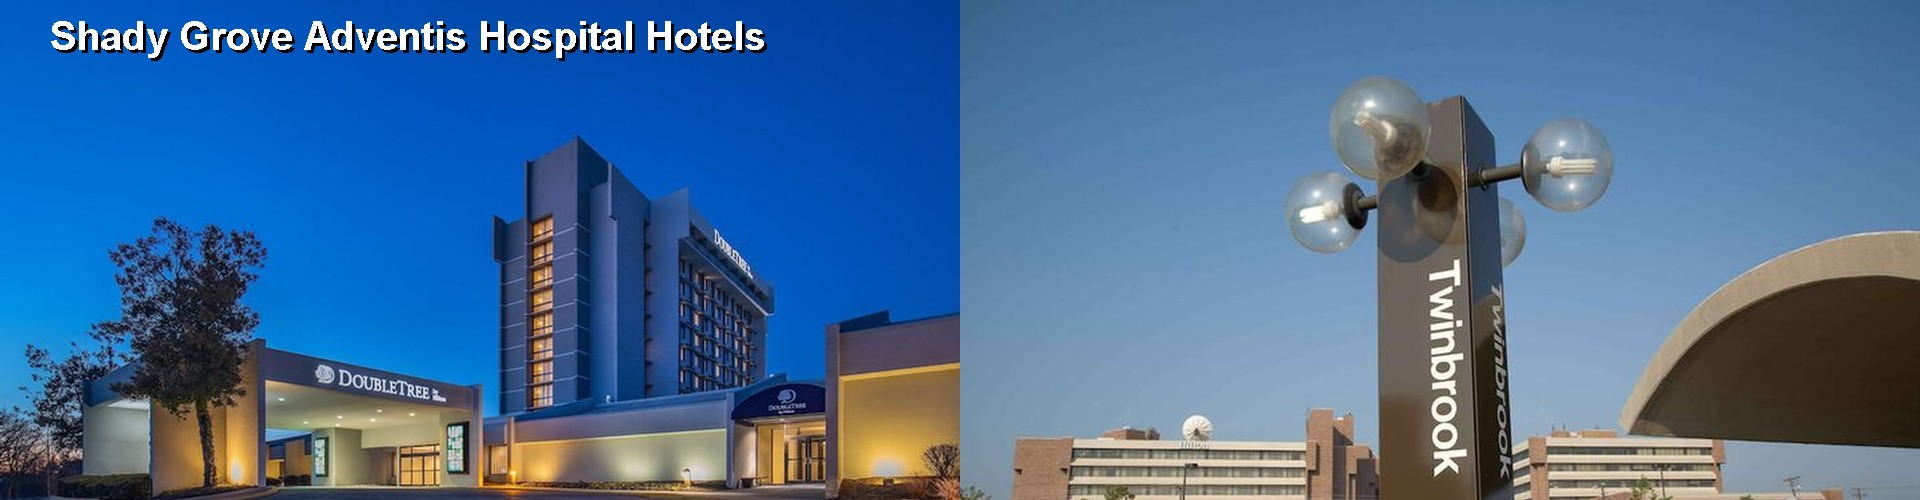 $48+ Hotels Near Shady Grove Adventis Hospital in Rockville MD